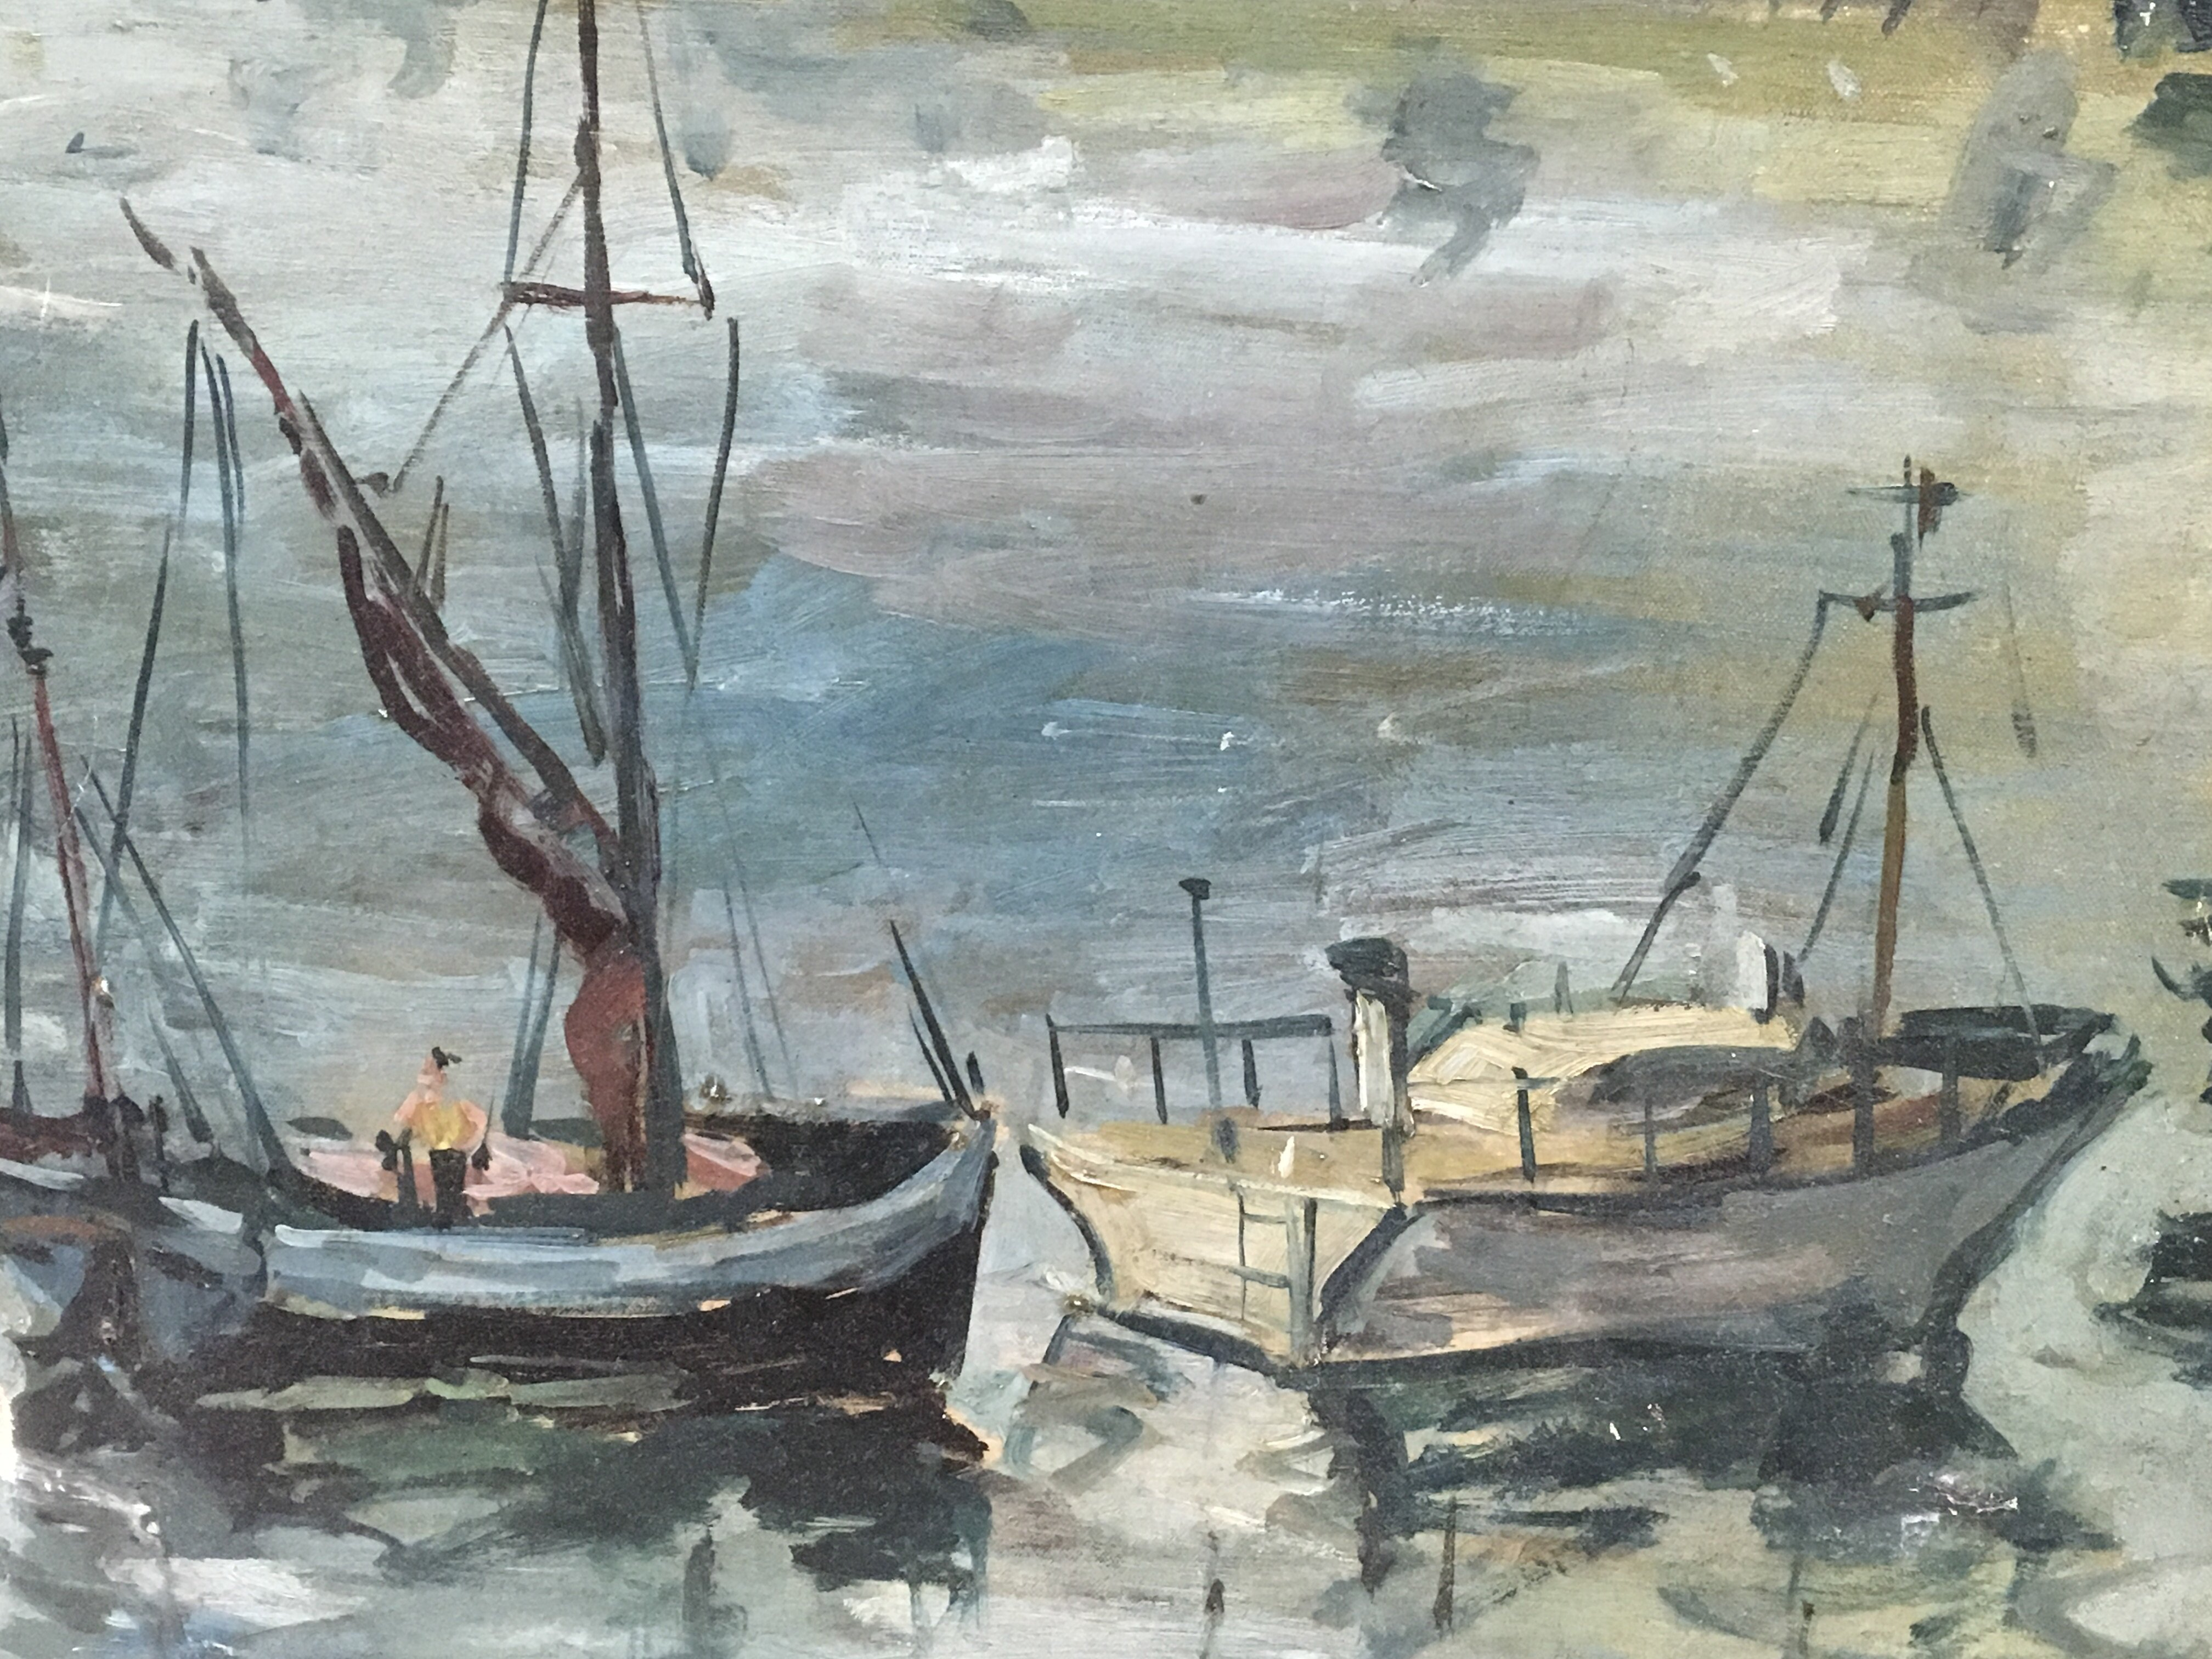 Lot 1228 - An oil on canvas of fishing boats in a harbour, attributed to D.Grant. Approx 61cm x 51cm, a/f.